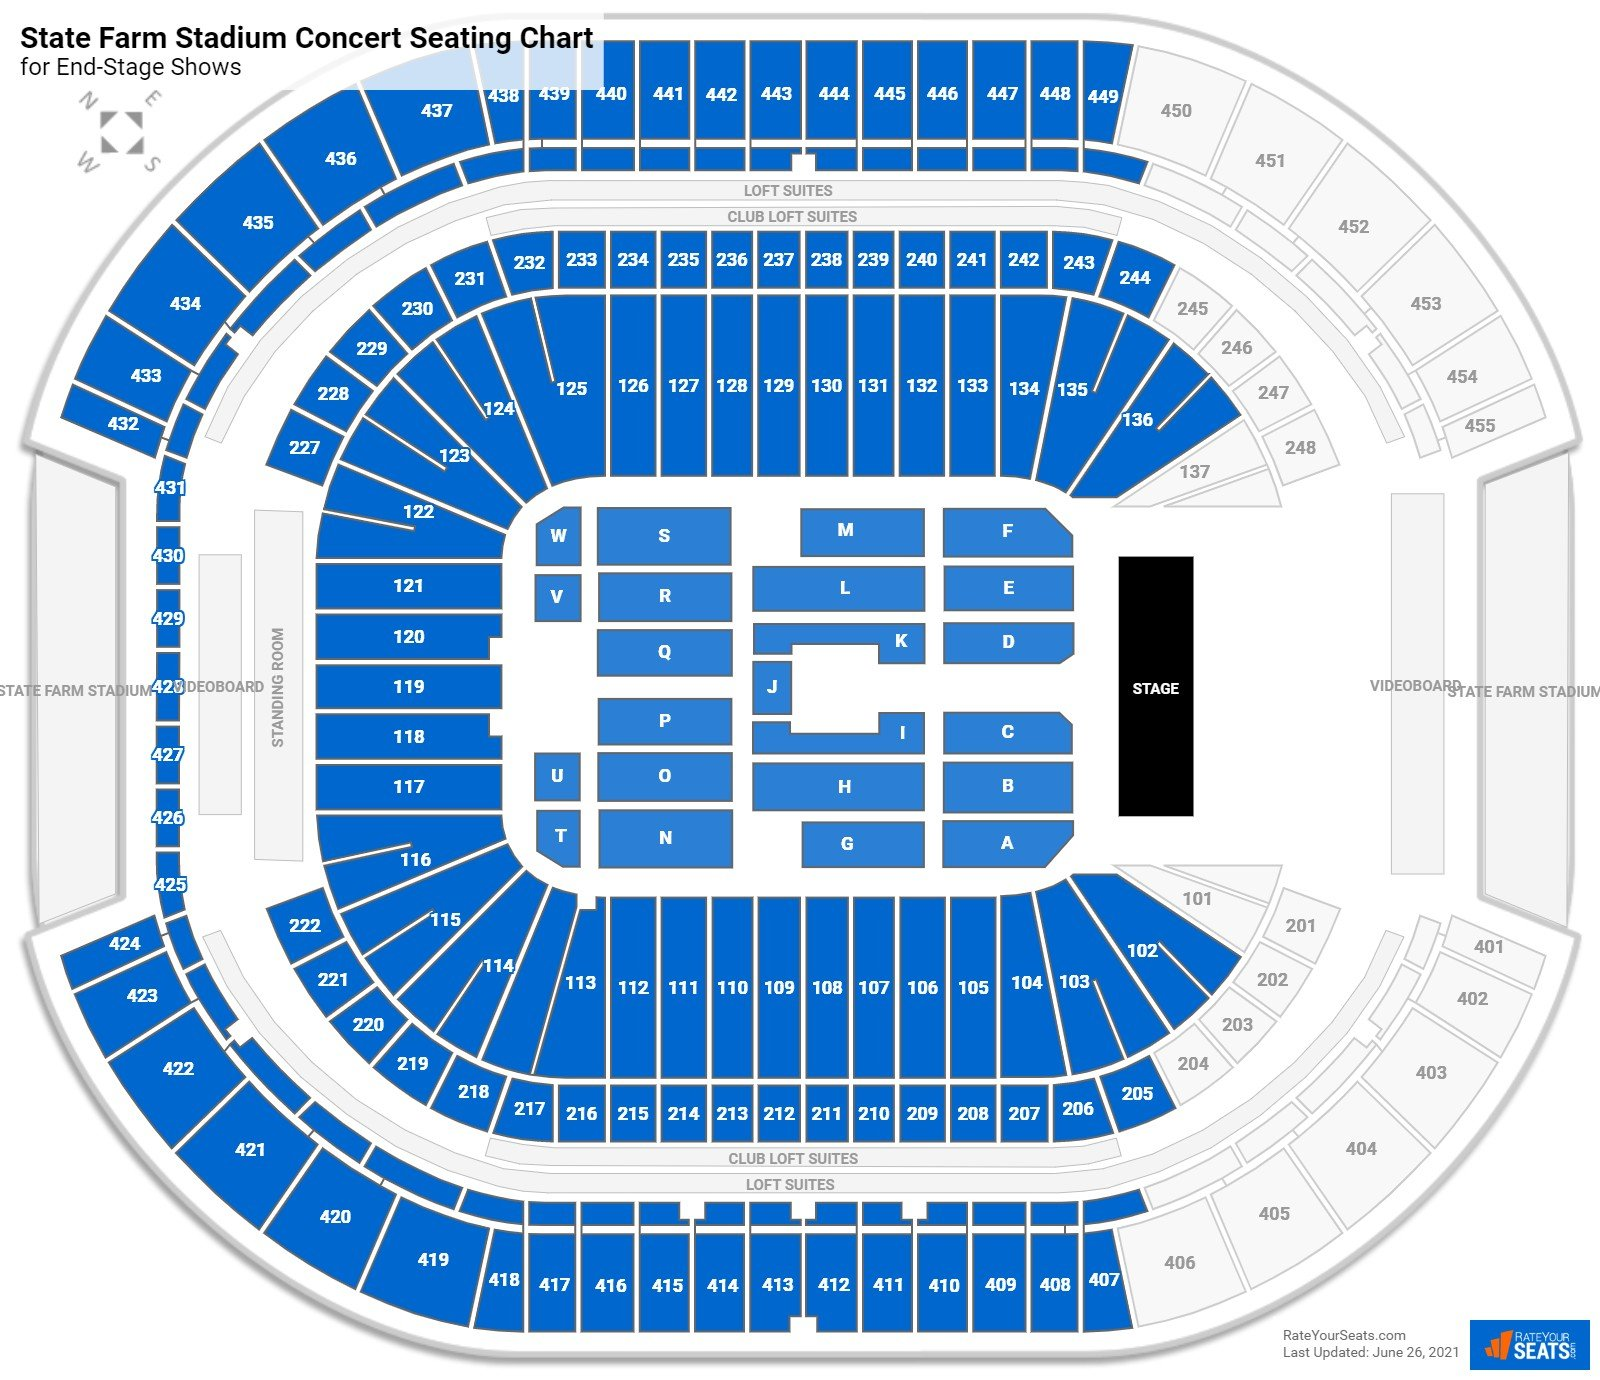 State Farm Stadium Seating Chart for Concerts